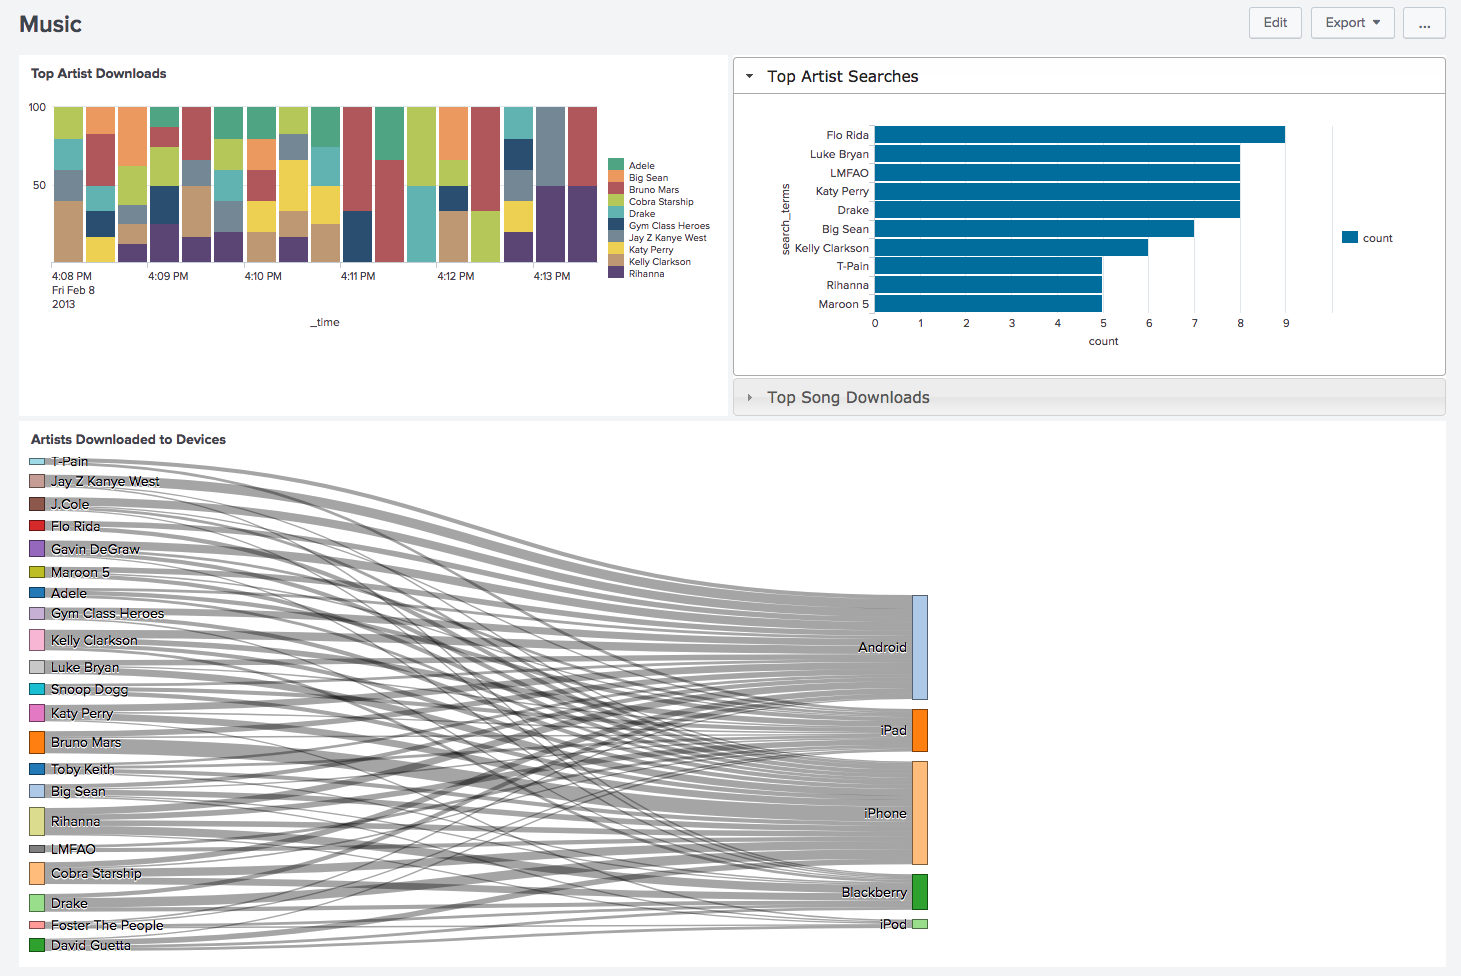 App with a Sankey diagram